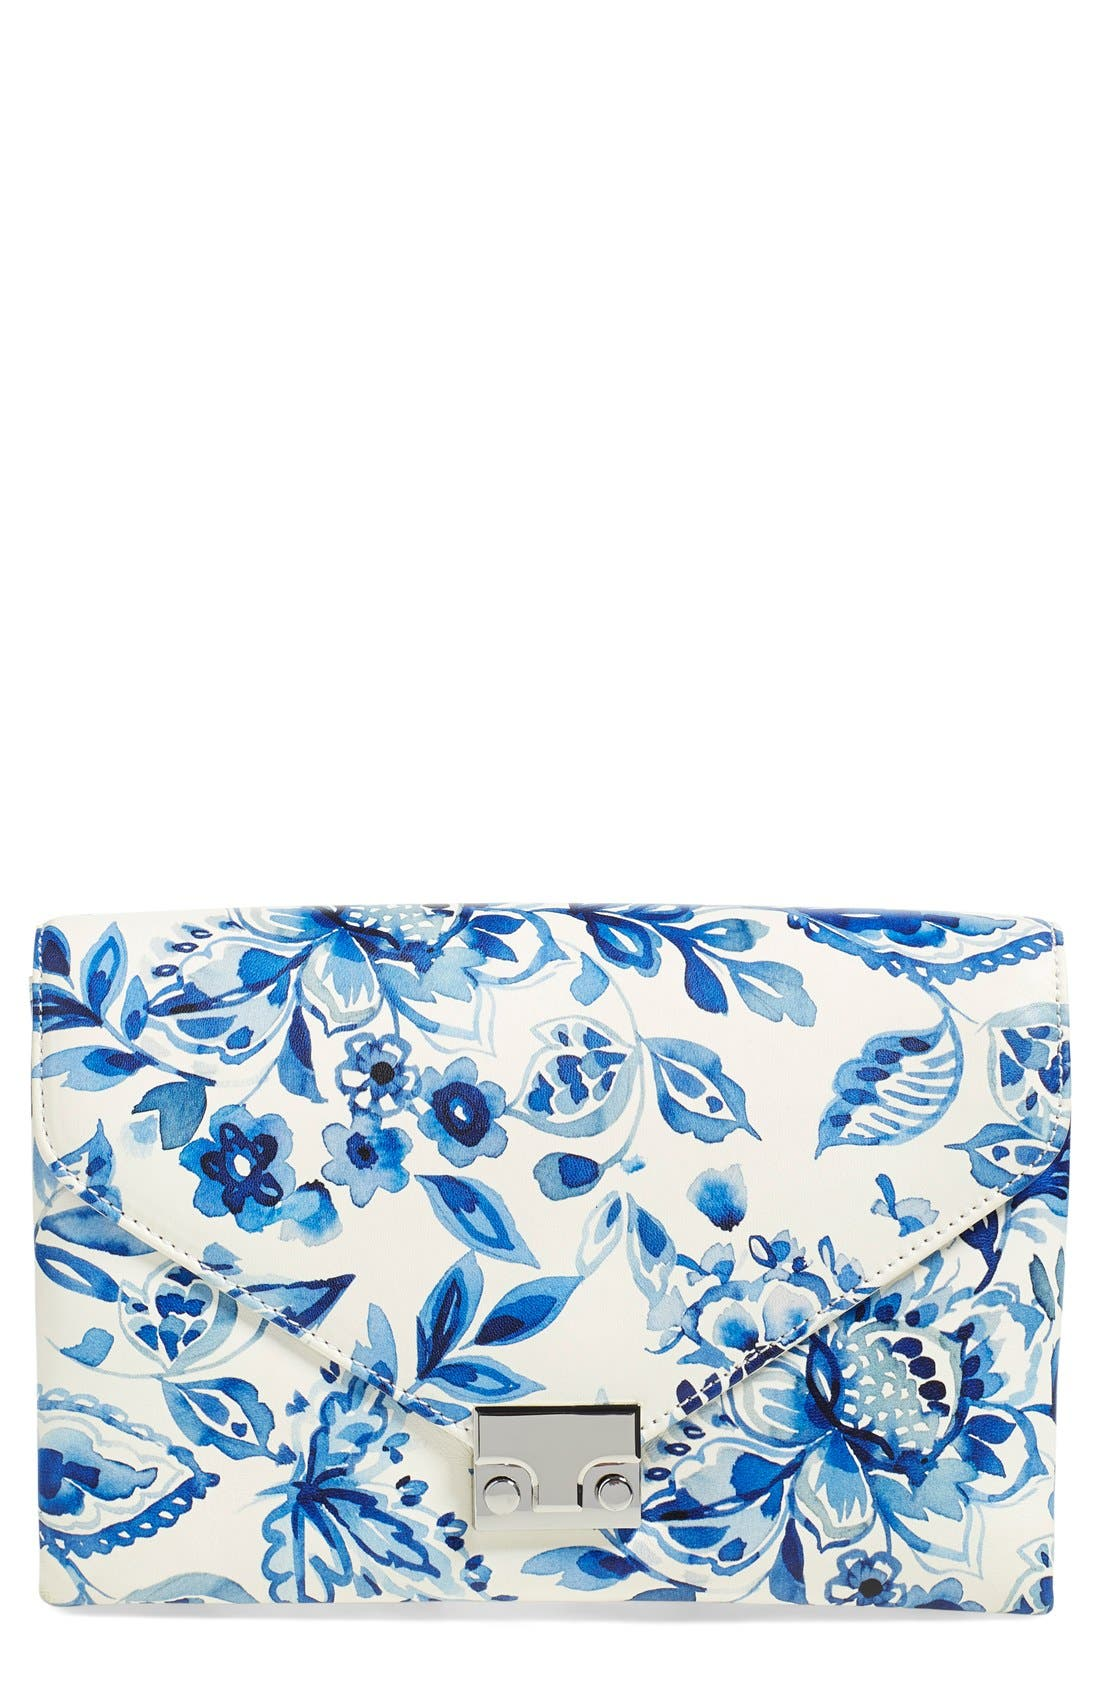 Alternate Image 1 Selected - Loeffler Randall 'Lock' Floral Print Leather Clutch